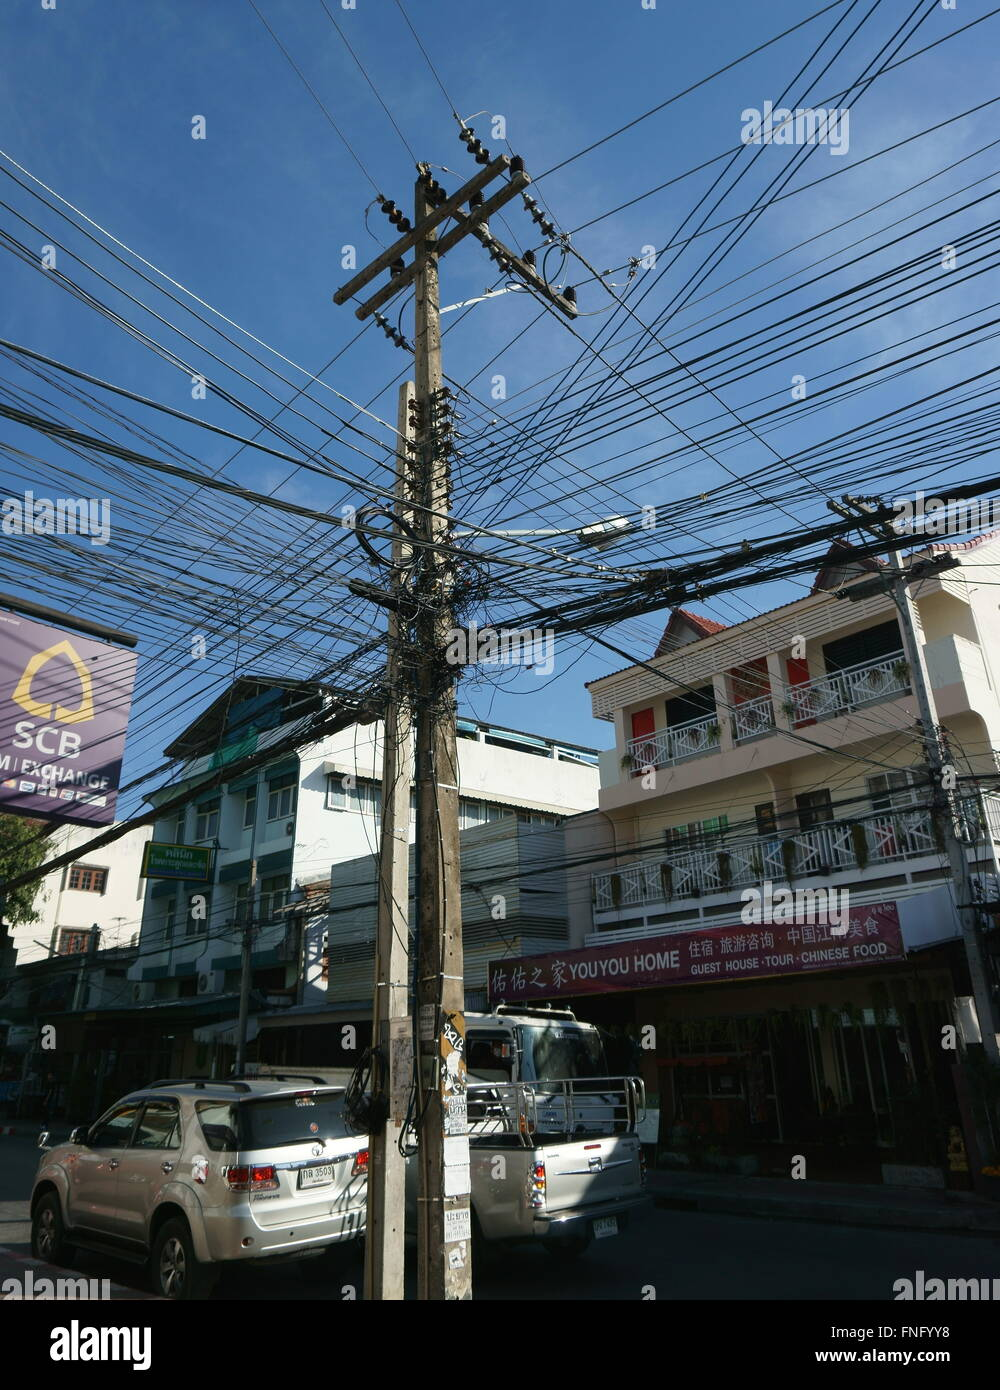 messy overhead electricity cables  in Chiang Mai, Thailand - Stock Image